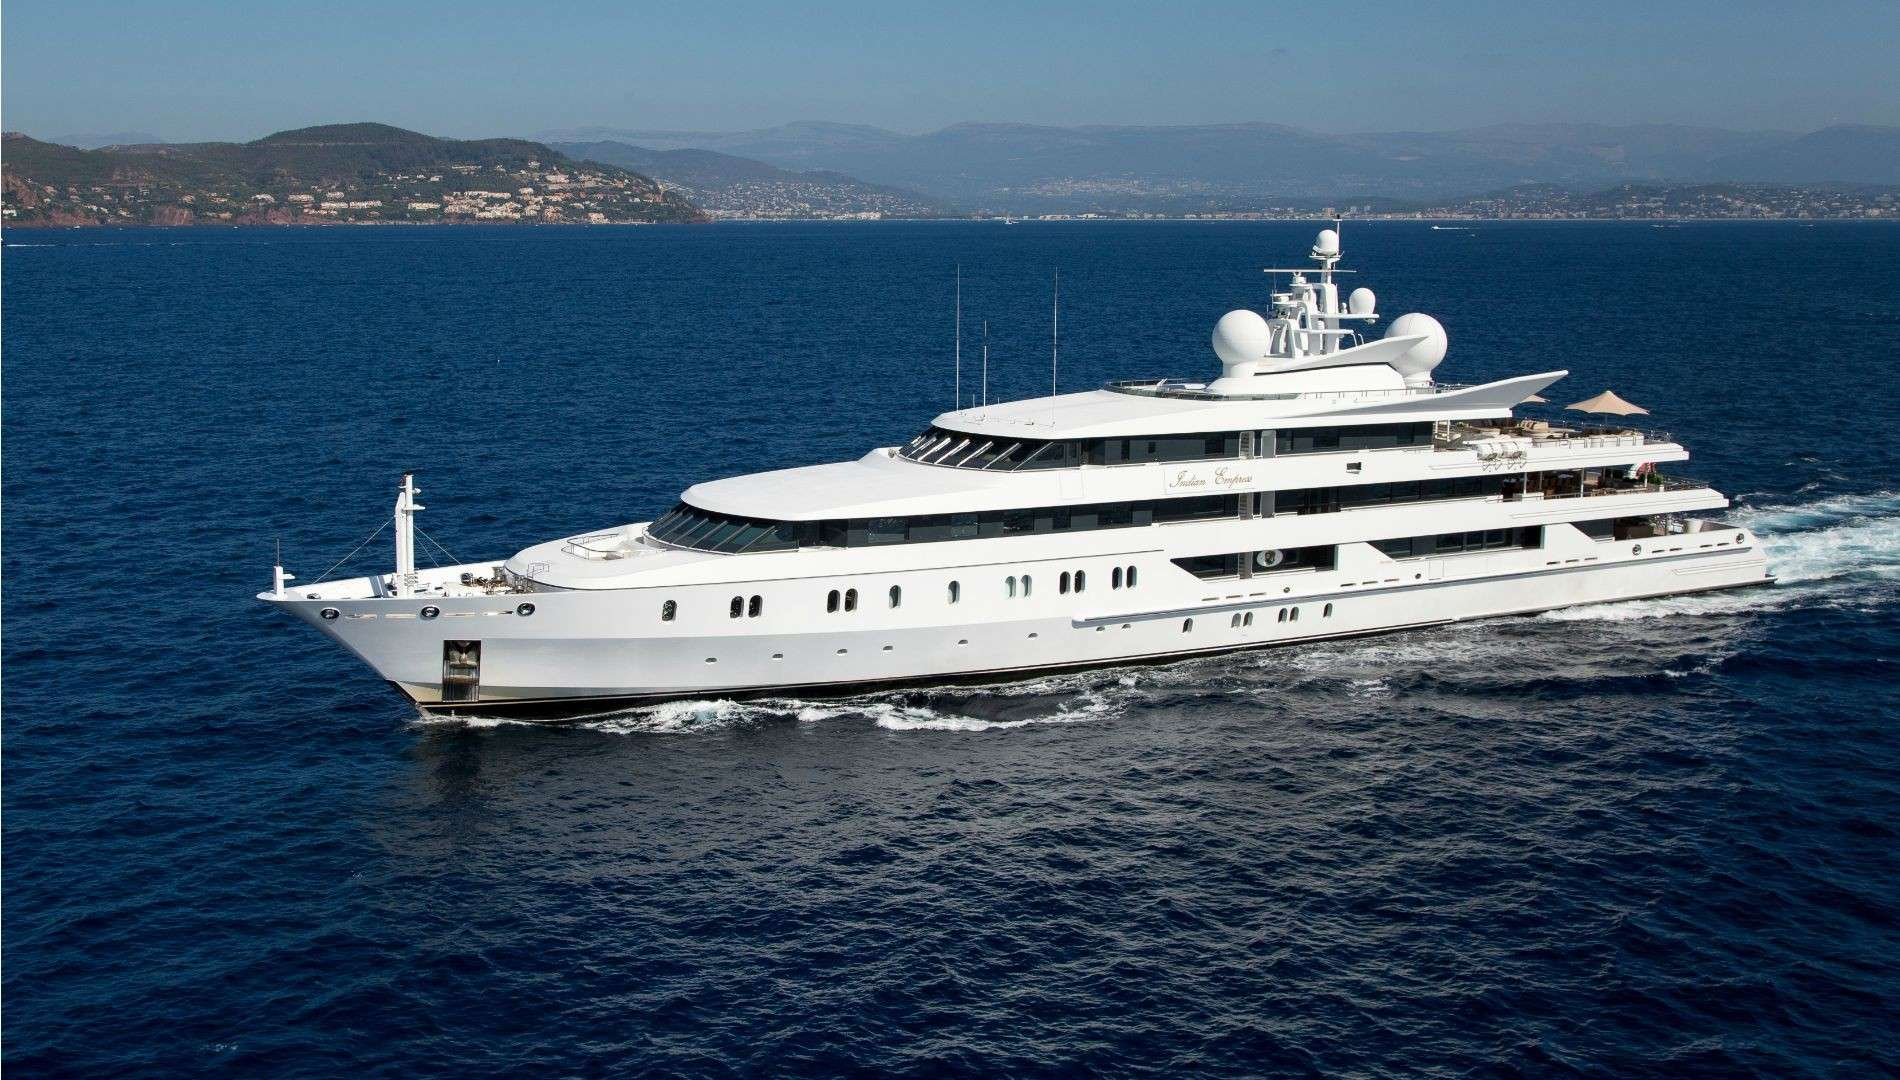 Indian Empress Mega Yacht Mykonos 12 Guests 17 Cabins